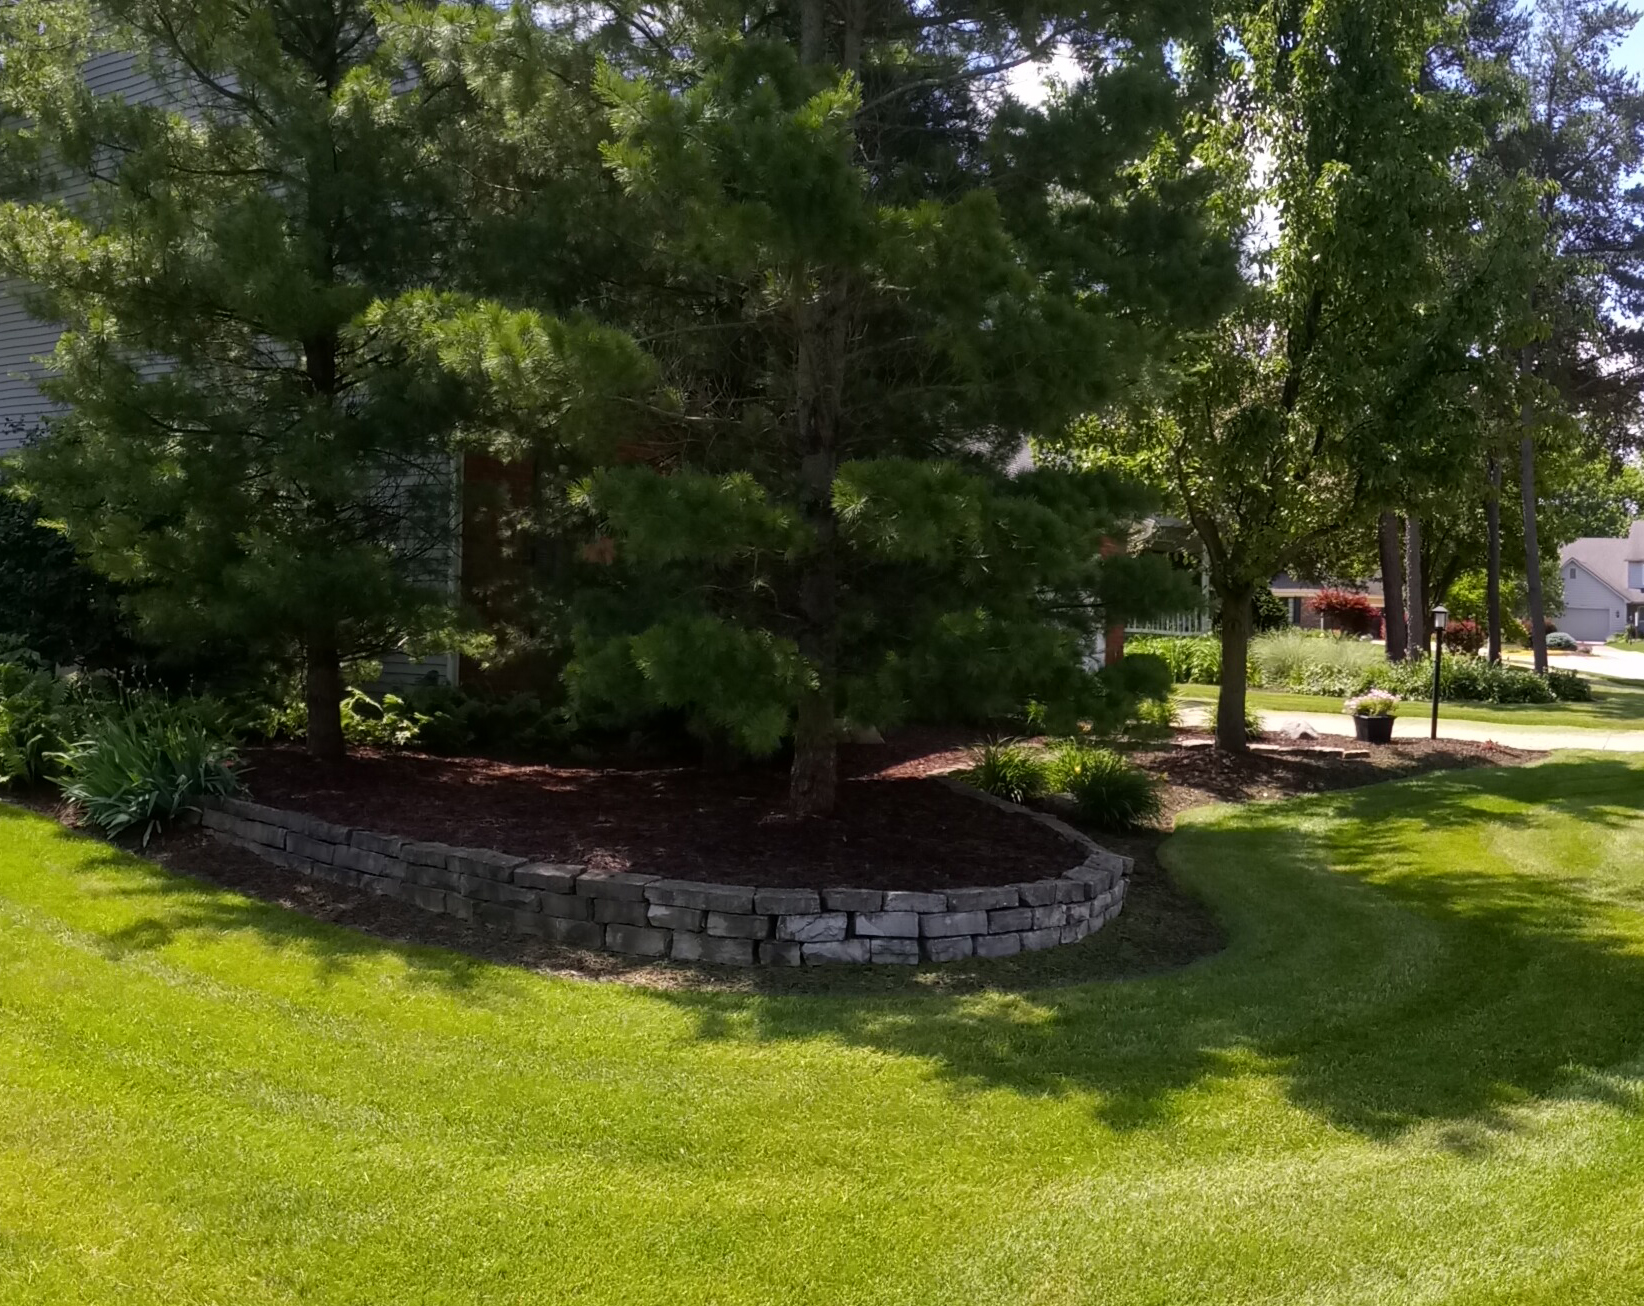 Landscaping, Hardscaping, and Mowing Services, Greater Fort Wayne Area